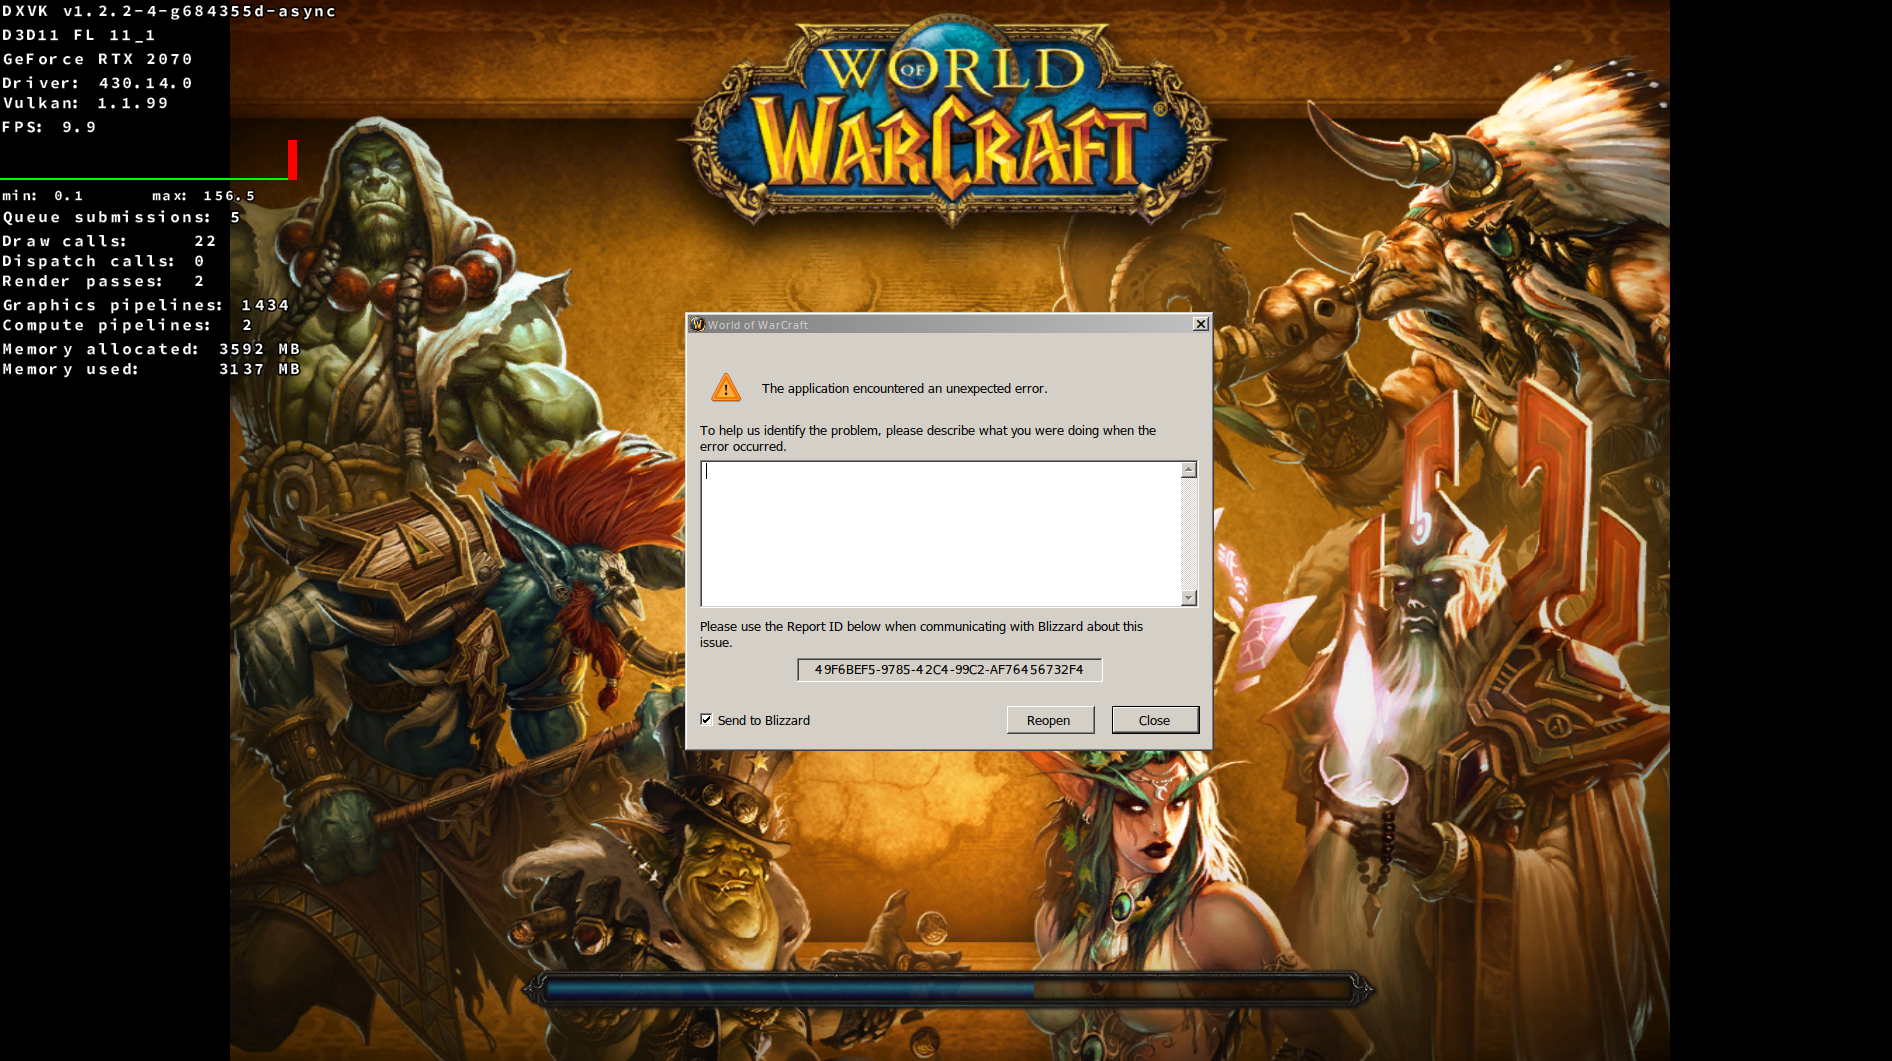 World of Warcraft crashes with Error 132 (Access Violation) · Issue